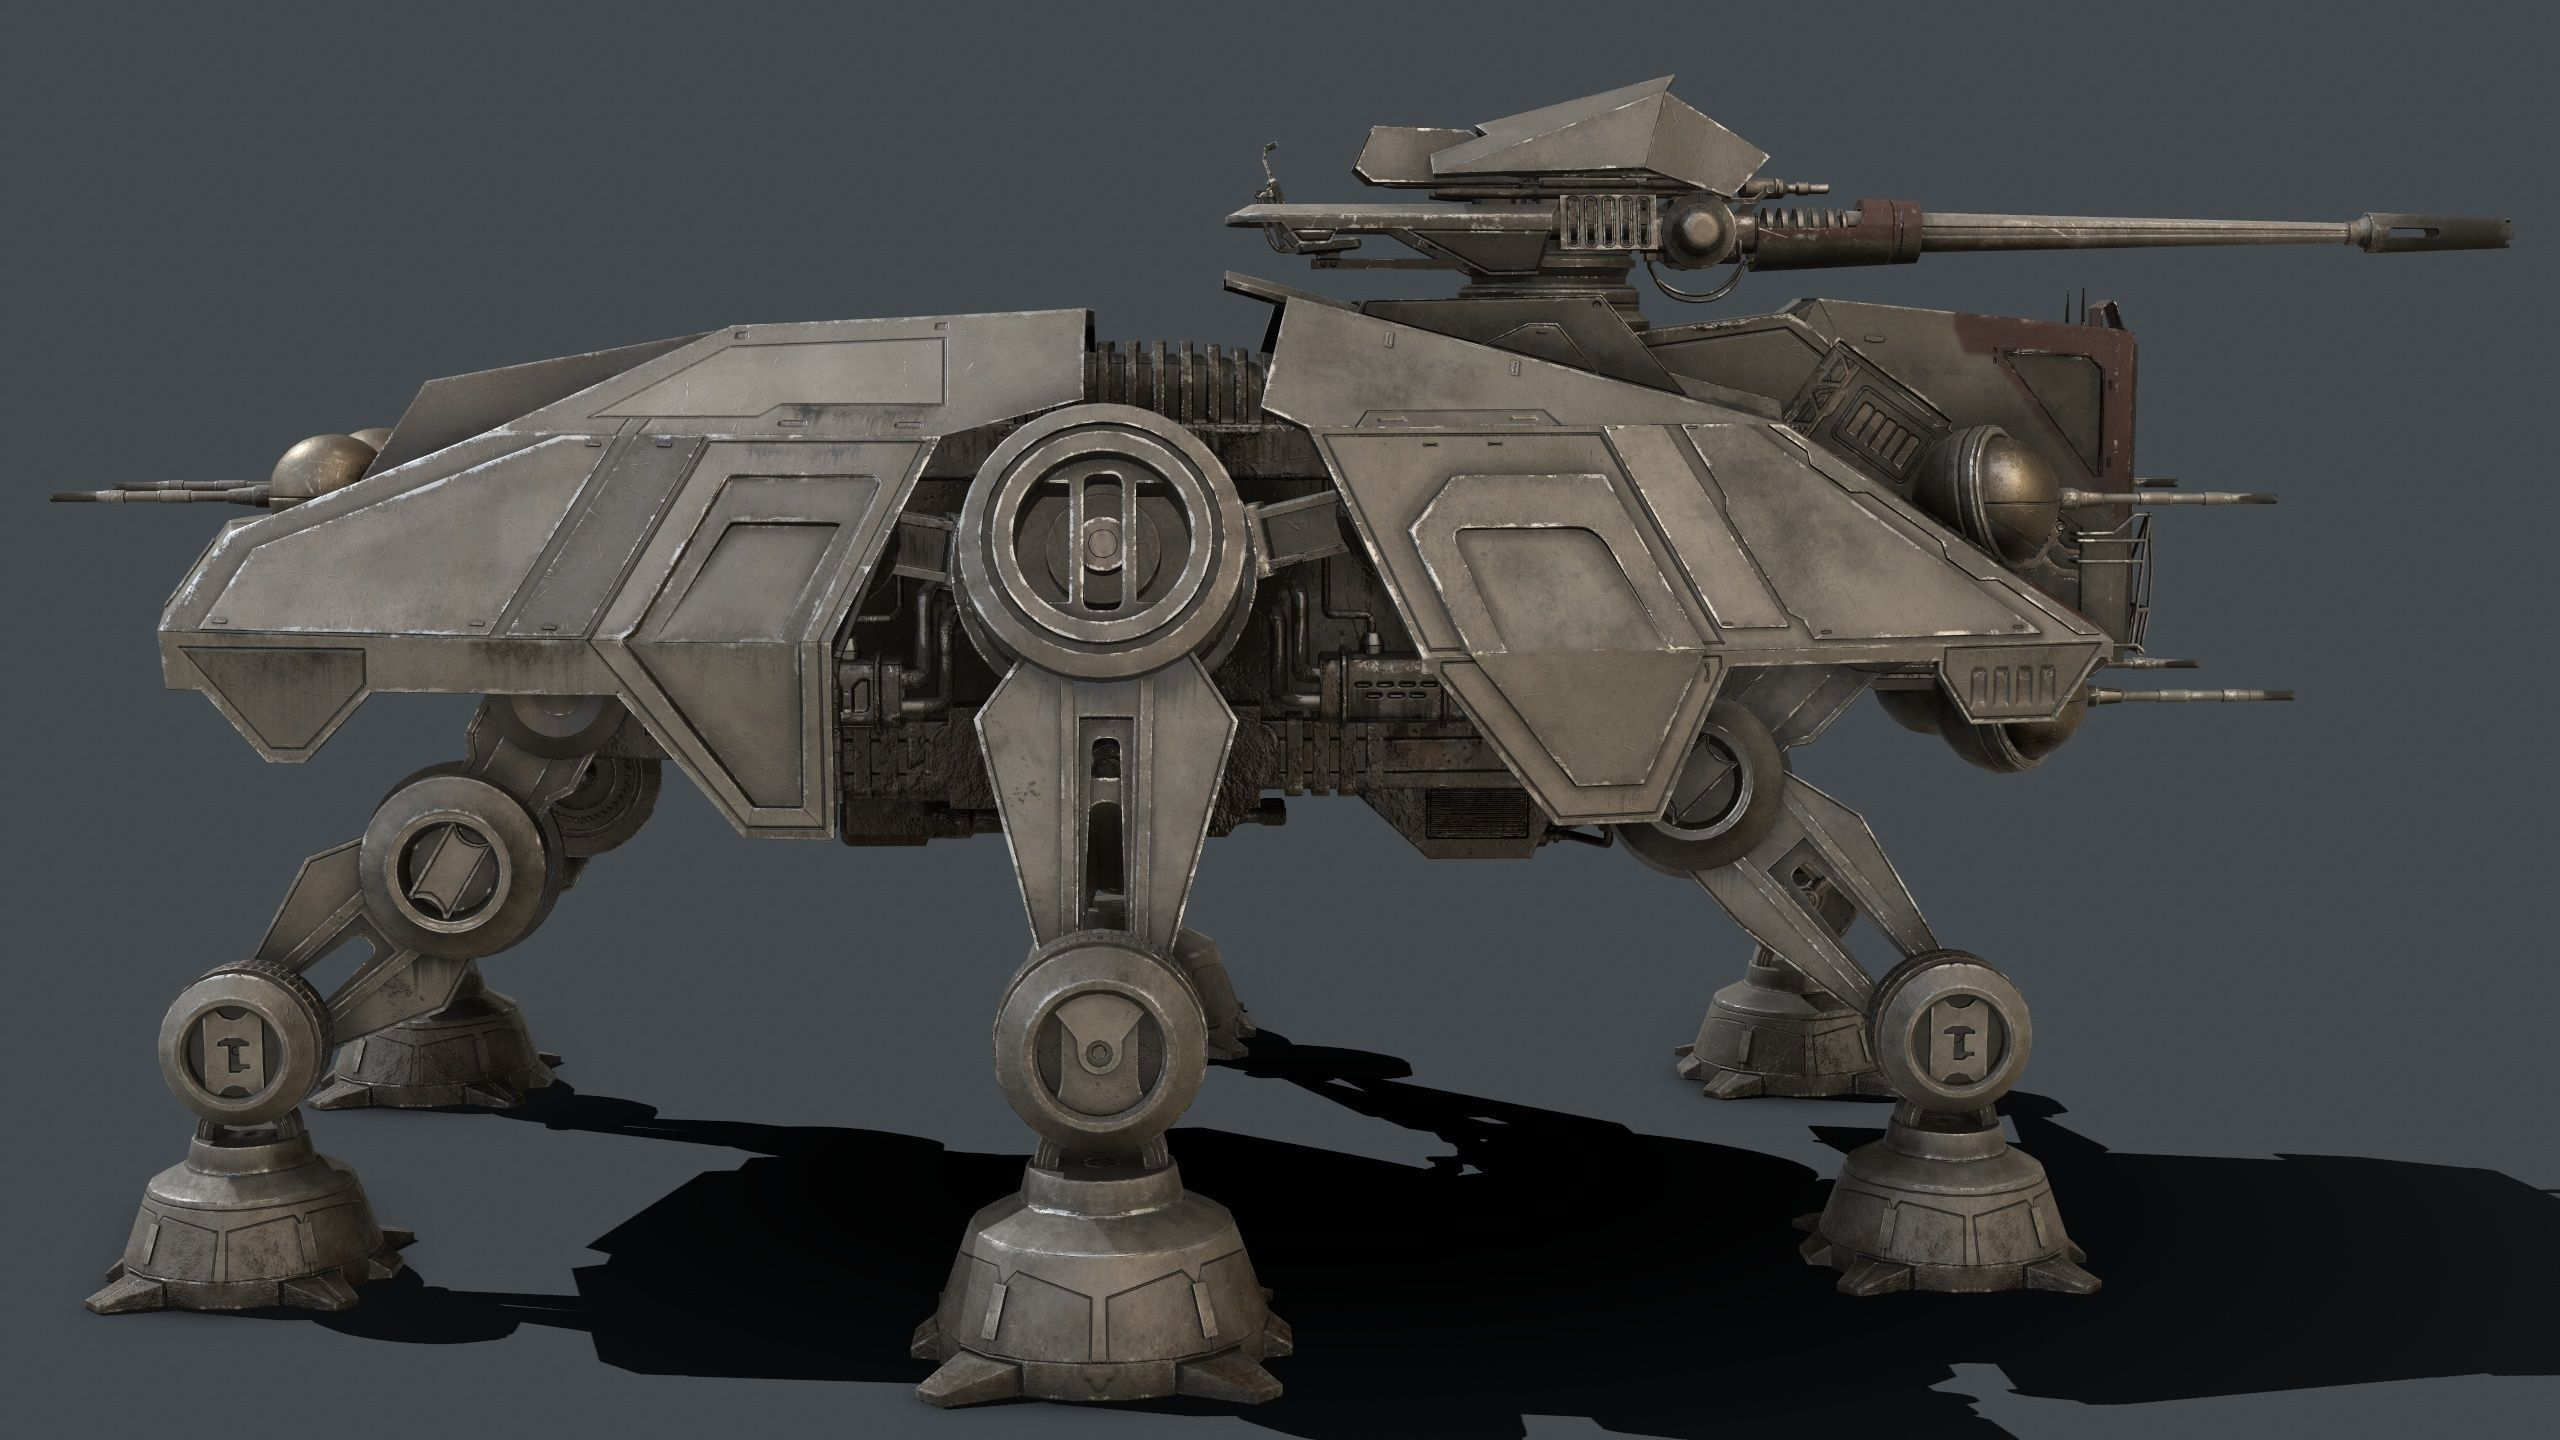 Star Wars At Te 3d Model Star Wars Spaceships Star Wars Ships Star Wars Images